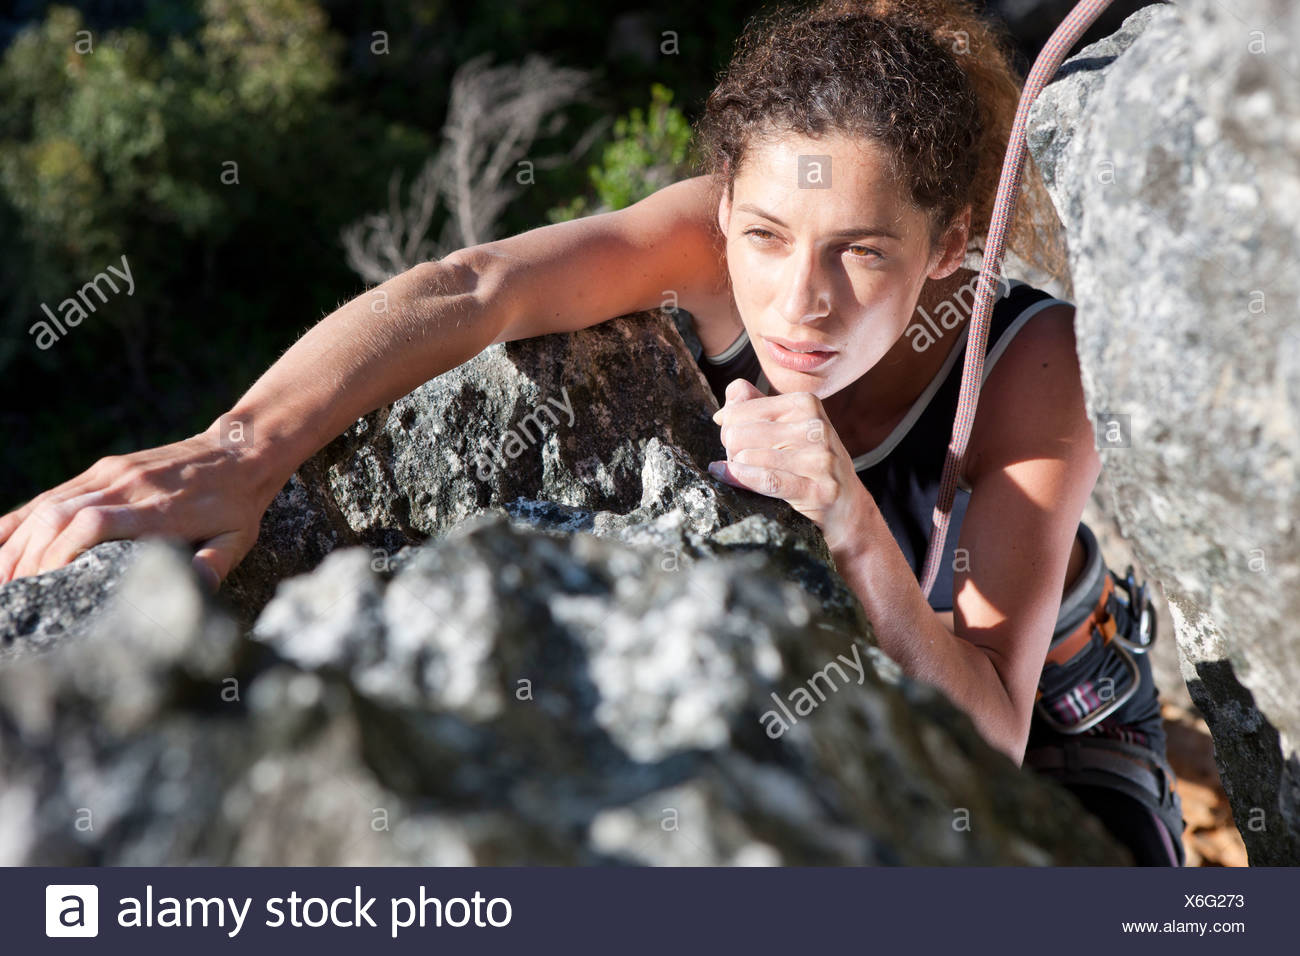 Young female rock climber moving up rock face - Stock Image